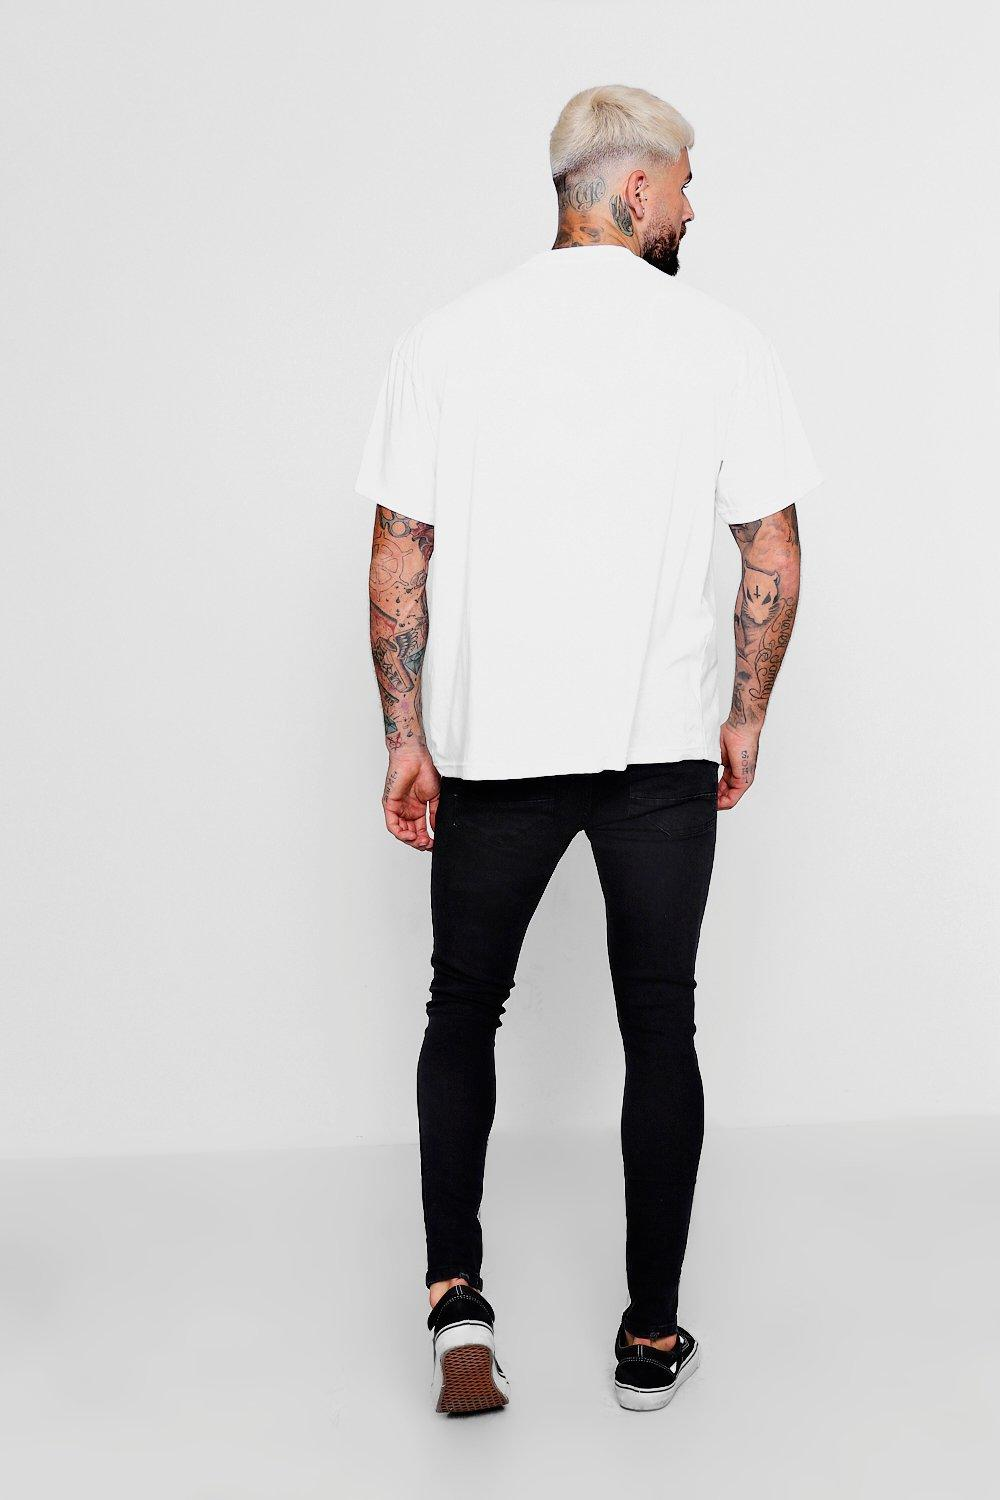 With black Knees Ripped Jeans washed Skinny Fit p1xqwBz